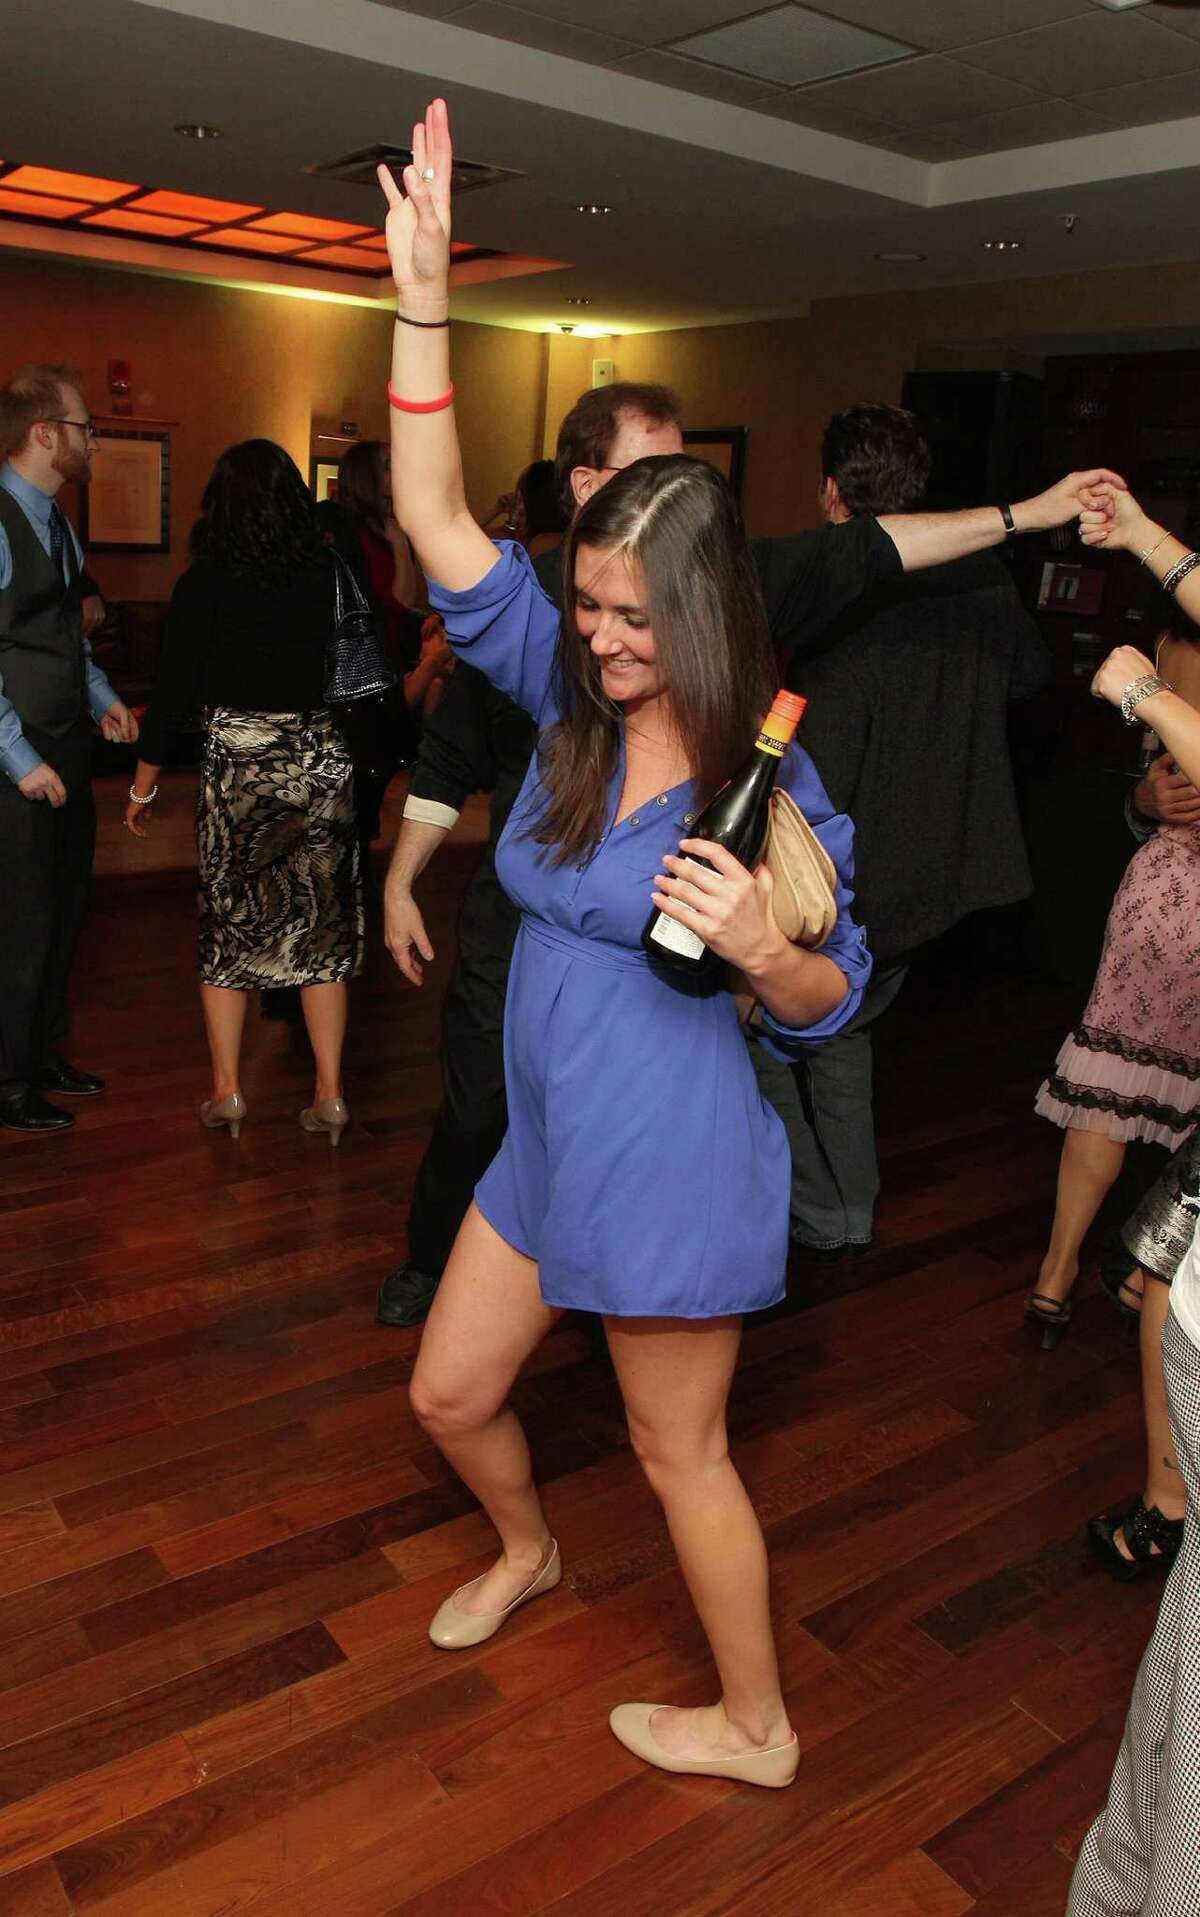 Were you Seen at the 18th Annual Beaujolais Nouveau Wine Celebration to benefit The AIDS Council of Northeastern New York at the Hilton Garden Inn in Troy on Thursday, Nov. 15. 2012?